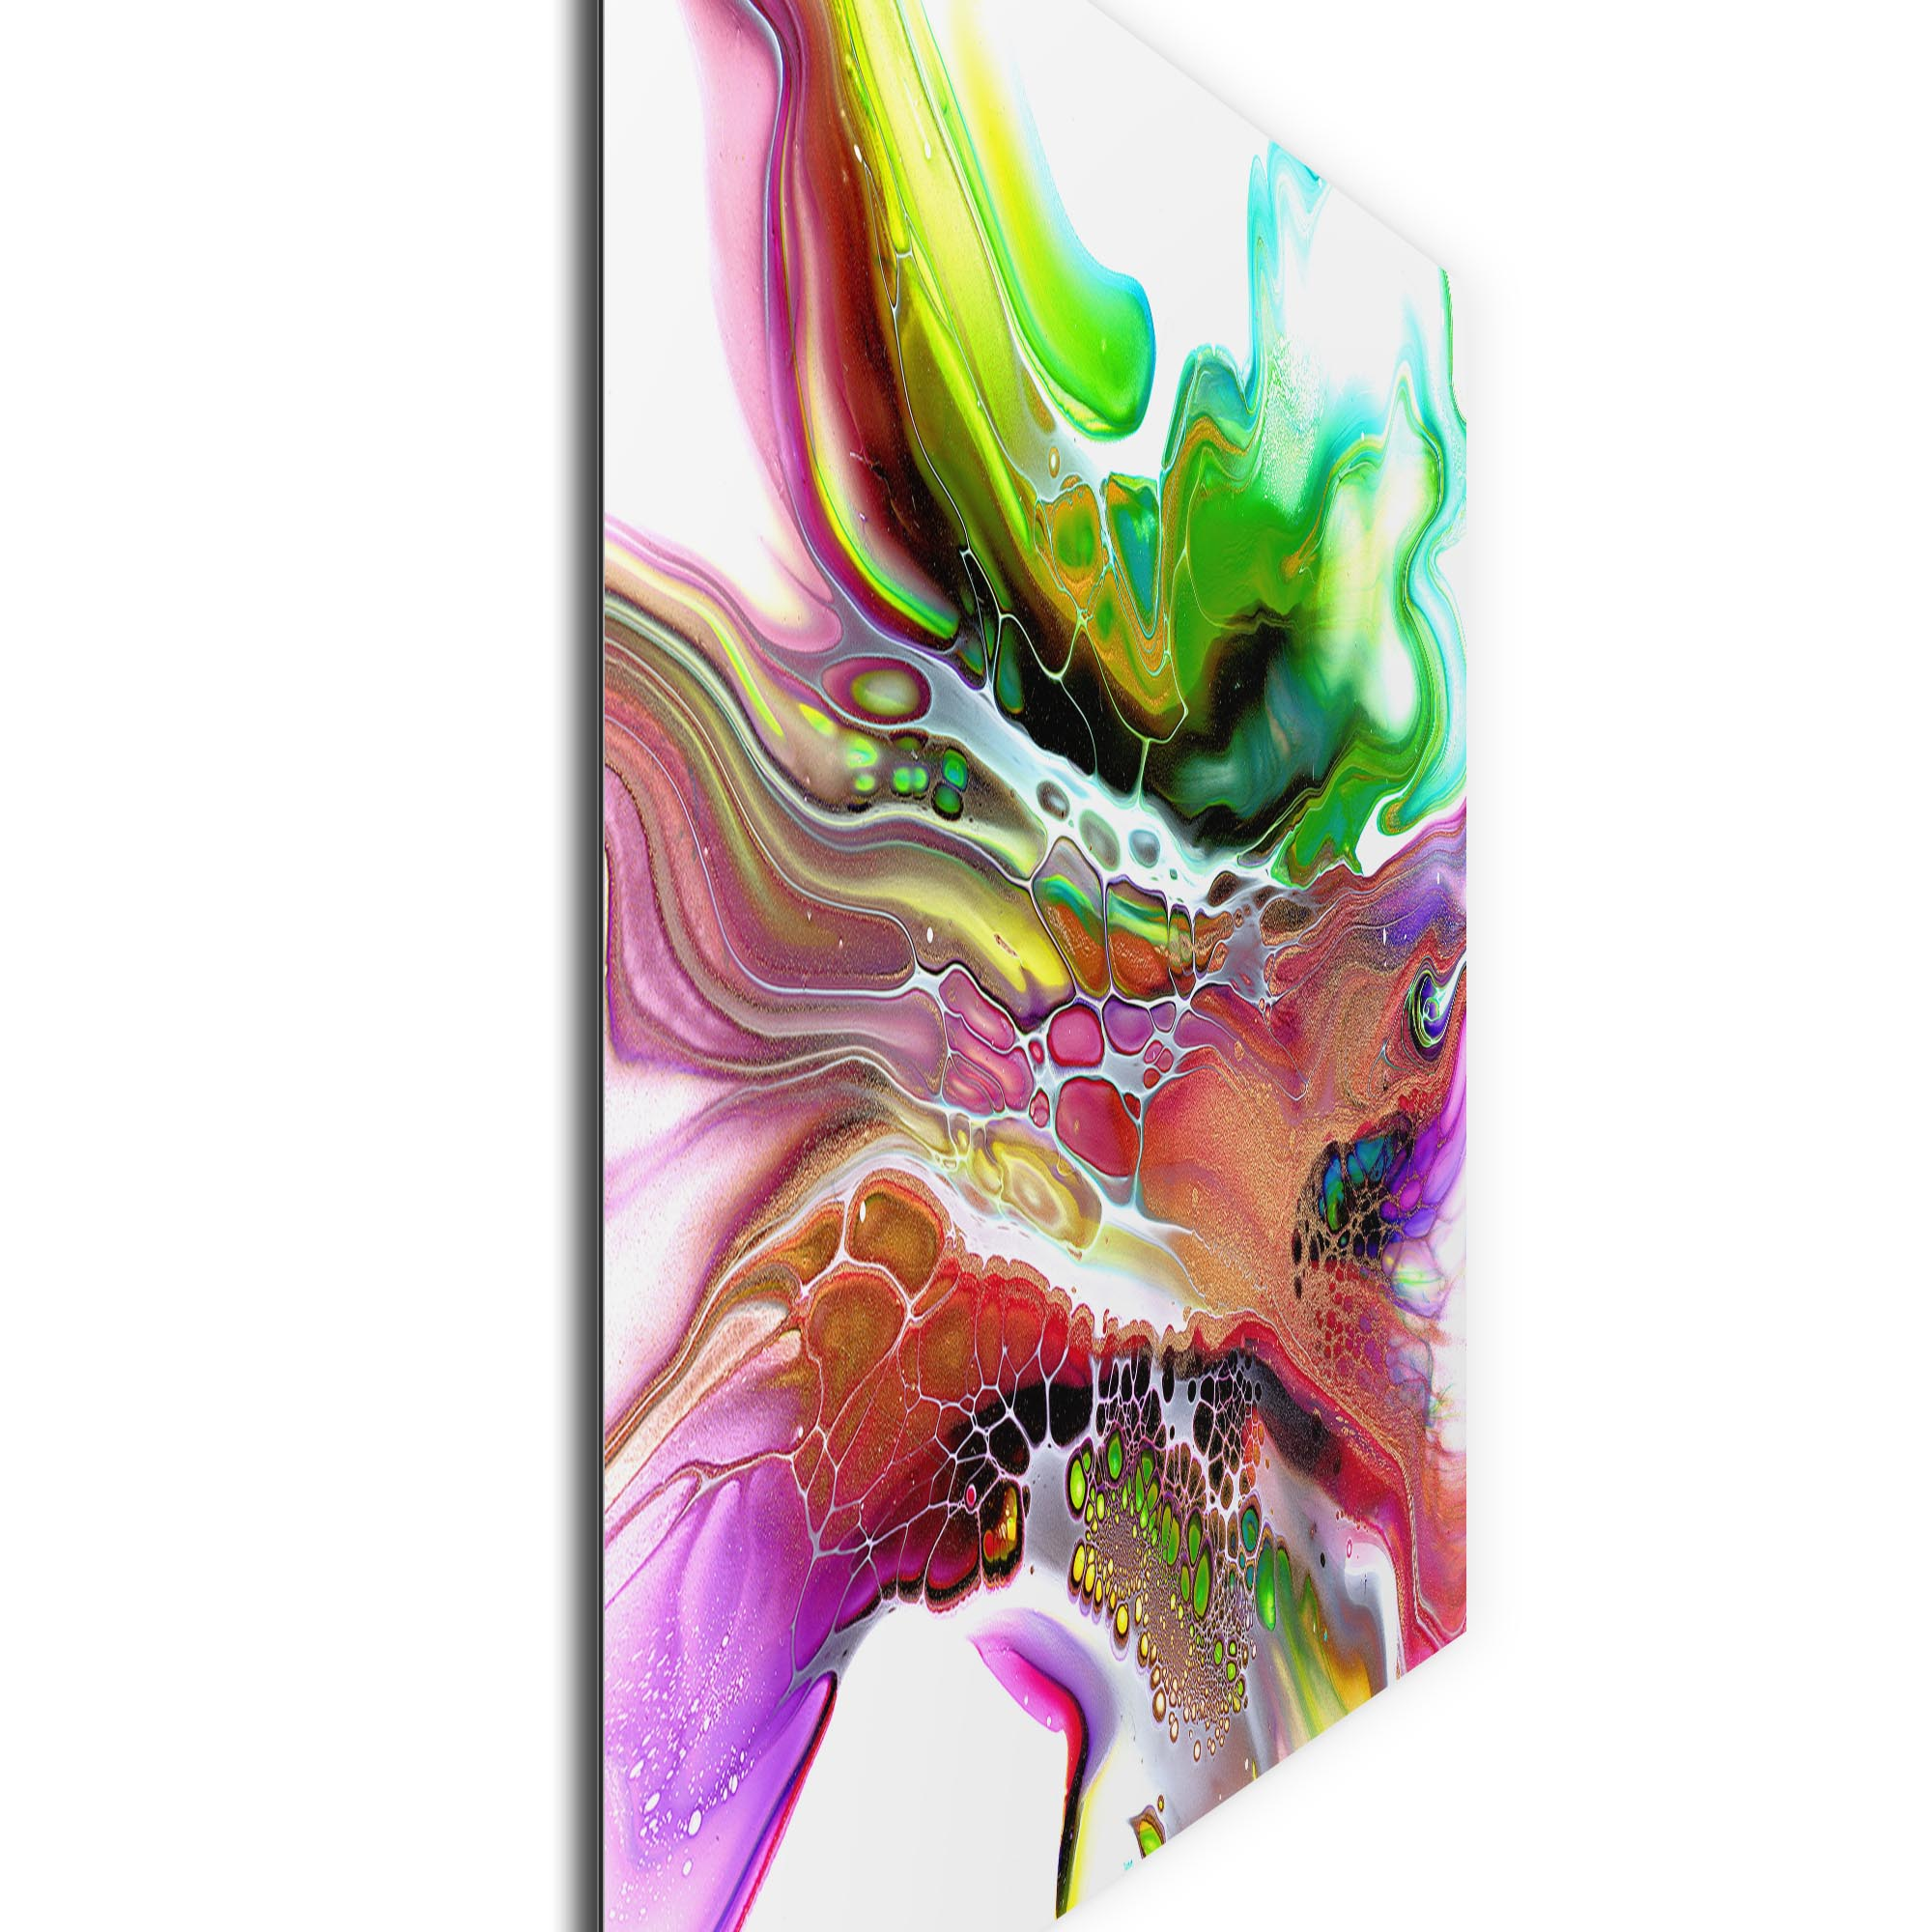 Compression by Elana Reiter - Abstract Wall Art, Modern Home Decor (32in x 24in) - Image 2